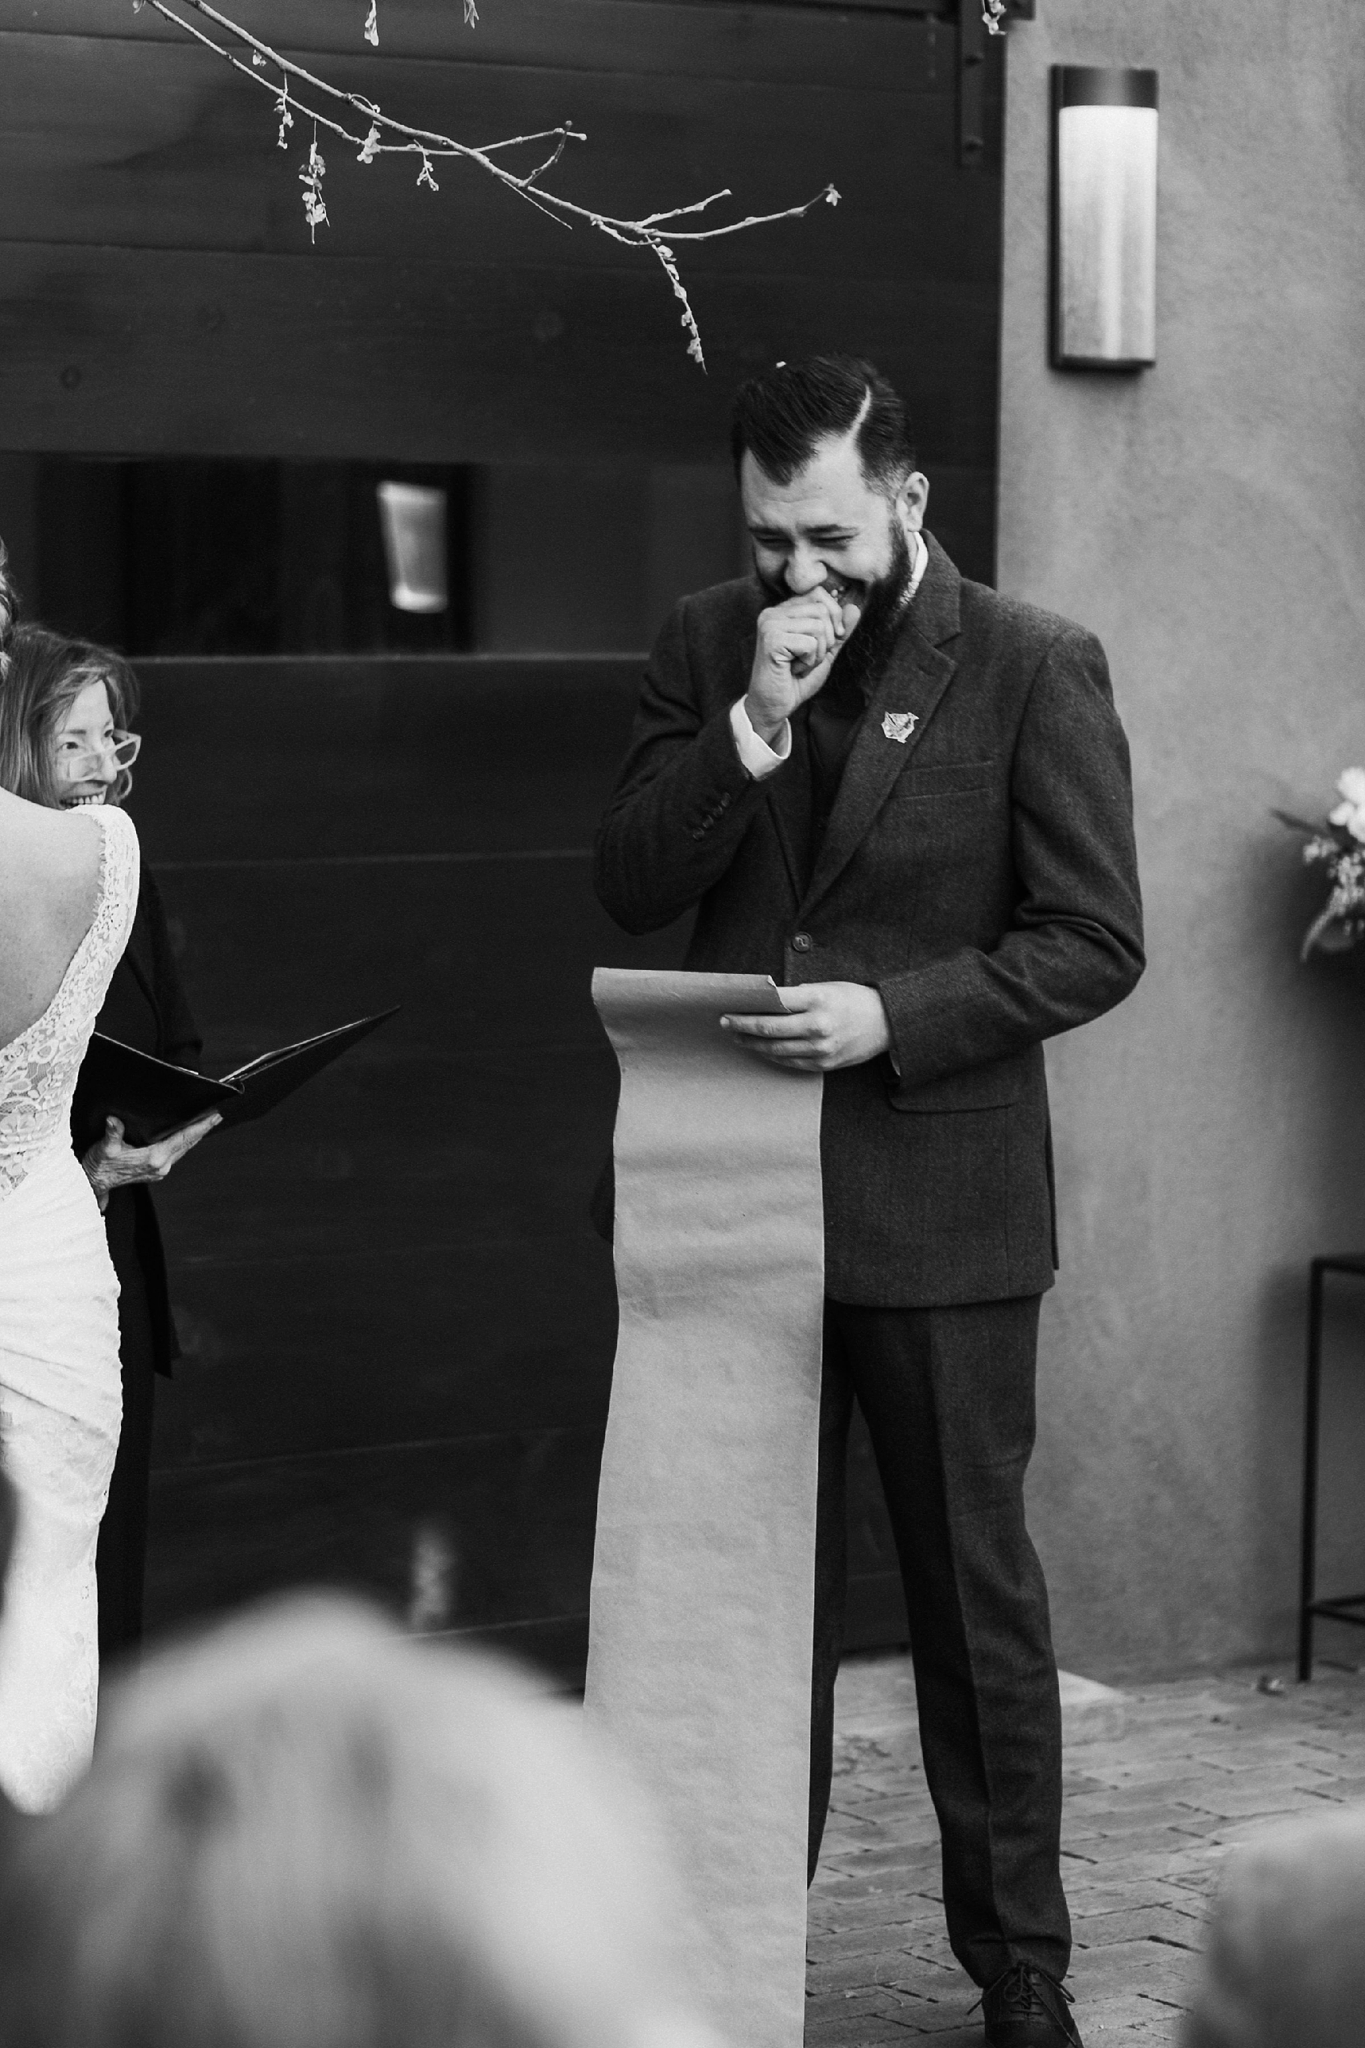 Alicia+lucia+photography+-+albuquerque+wedding+photographer+-+santa+fe+wedding+photography+-+new+mexico+wedding+photographer+-+albuquerque+wedding+-+sarabande+bed+breakfast+-+bed+and+breakfast+wedding_0055.jpg